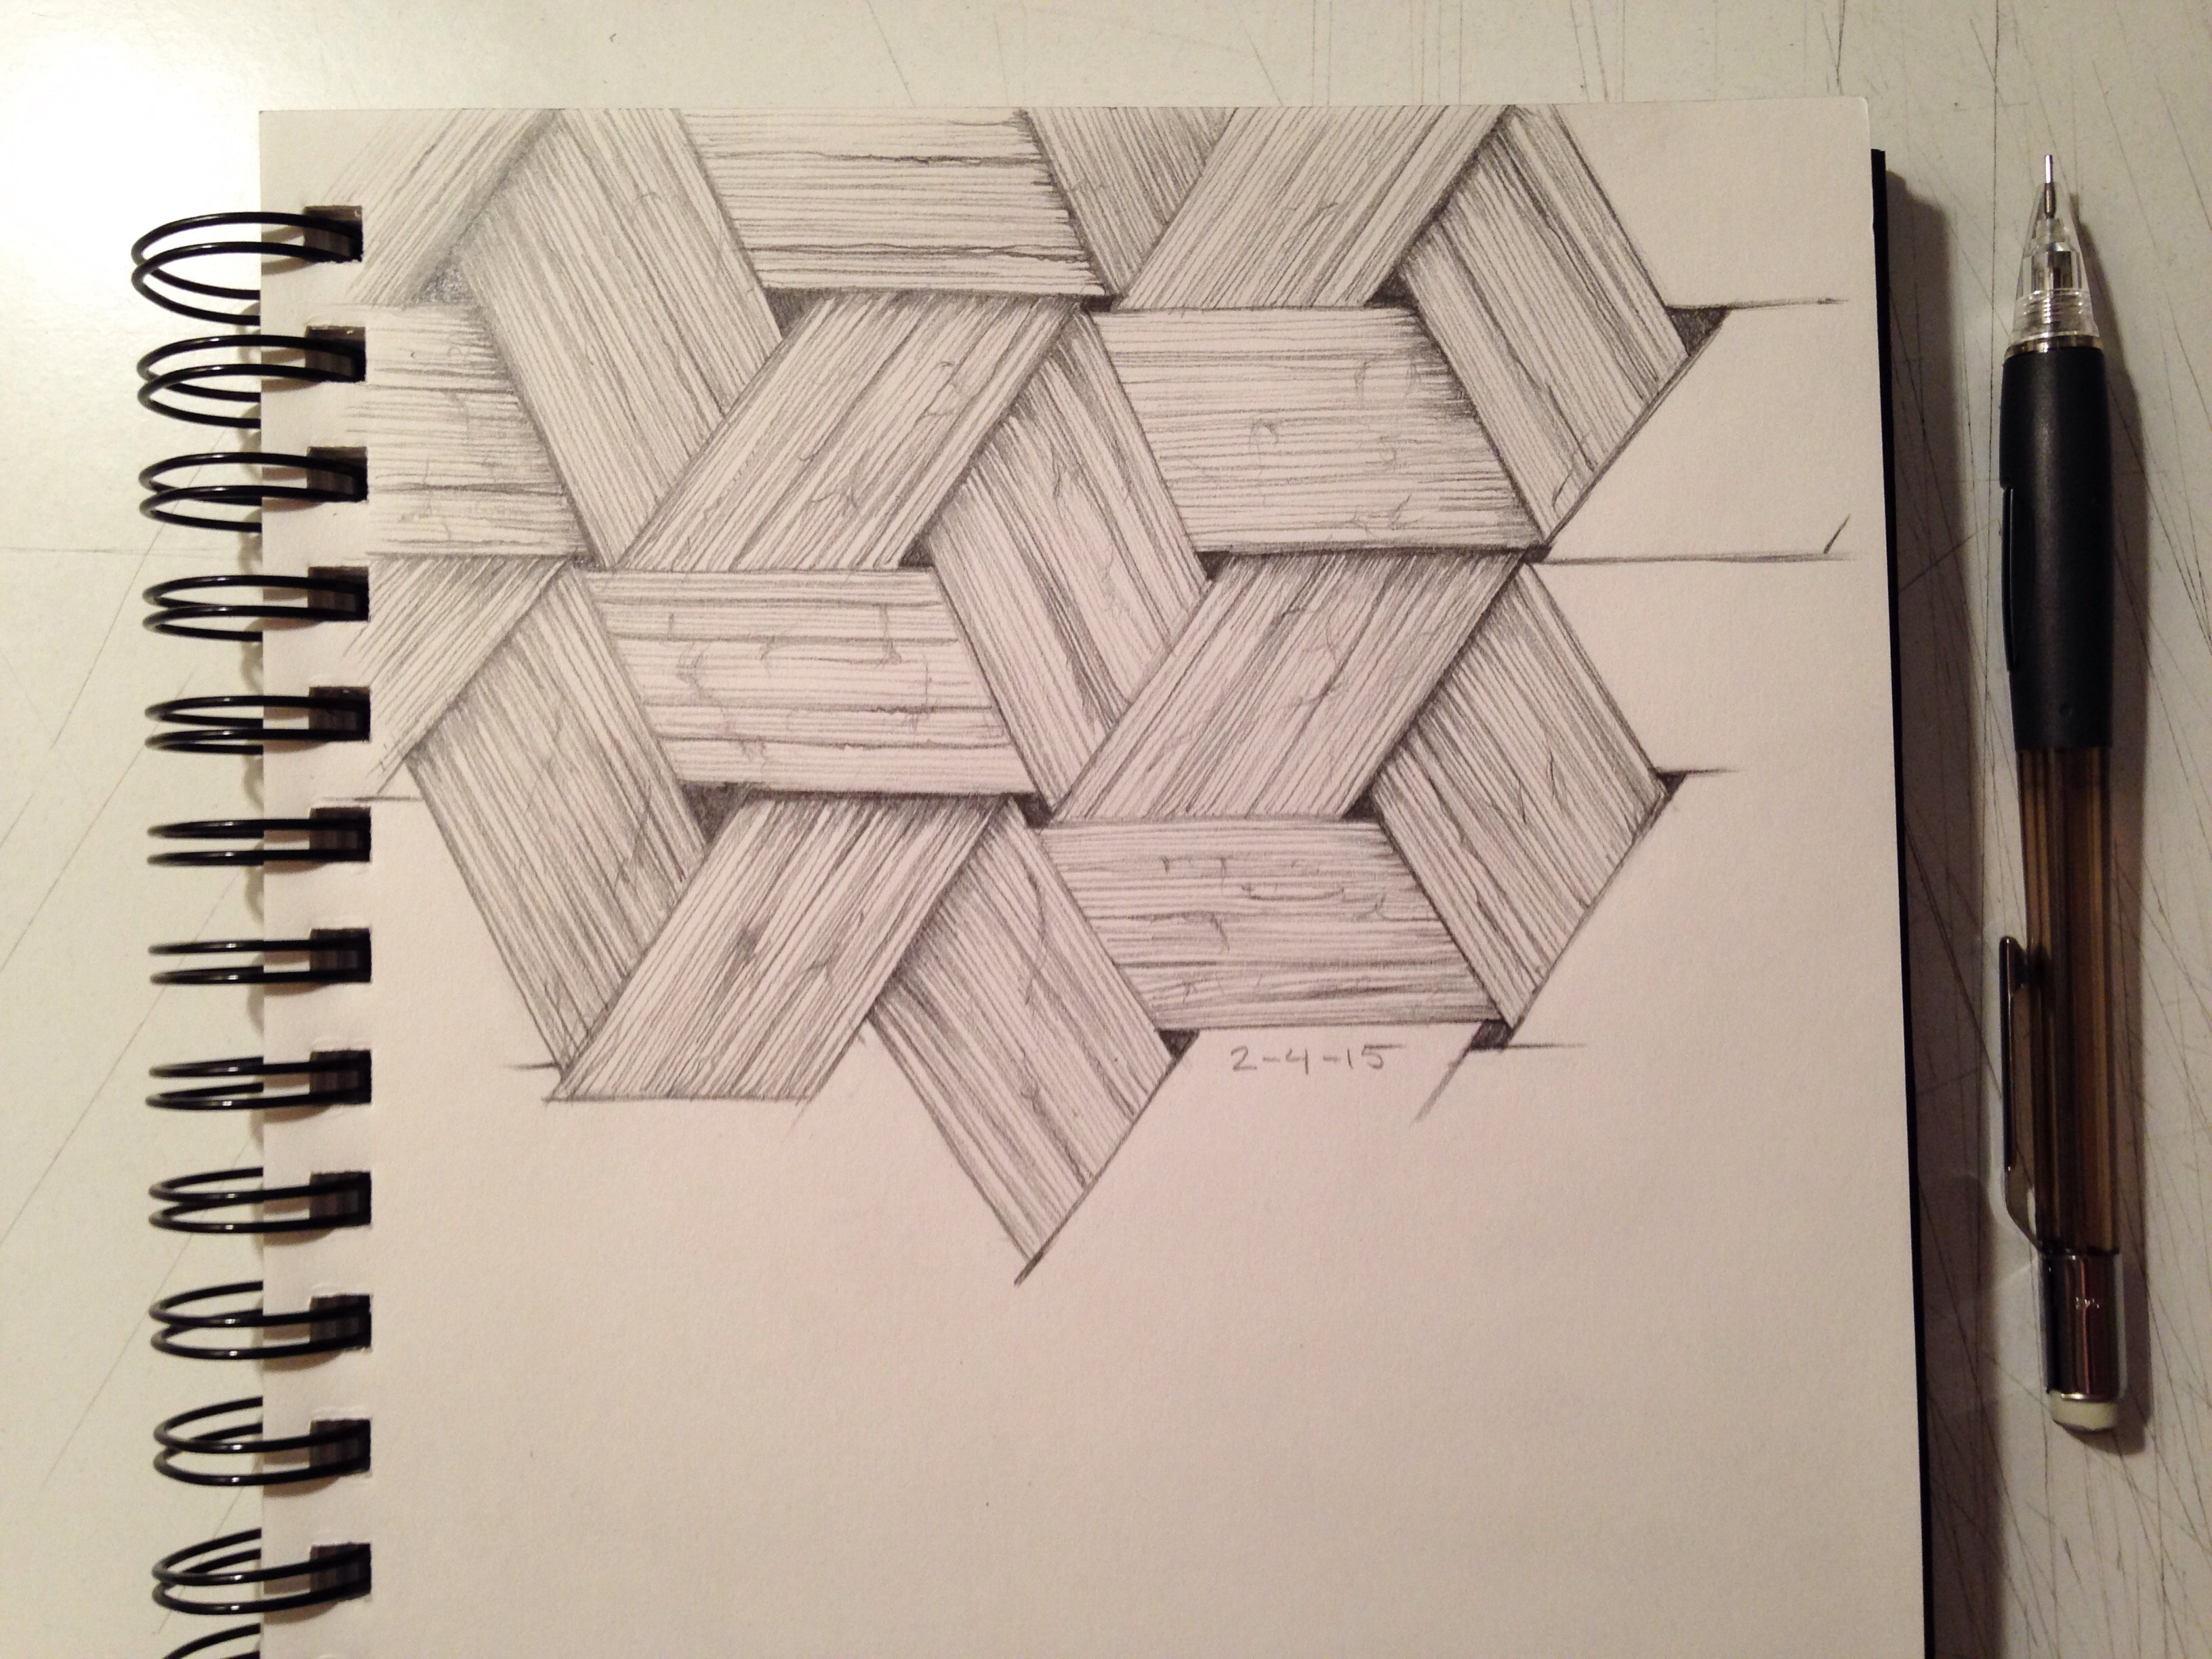 3264x2448 Basket Weave Texture Drawing